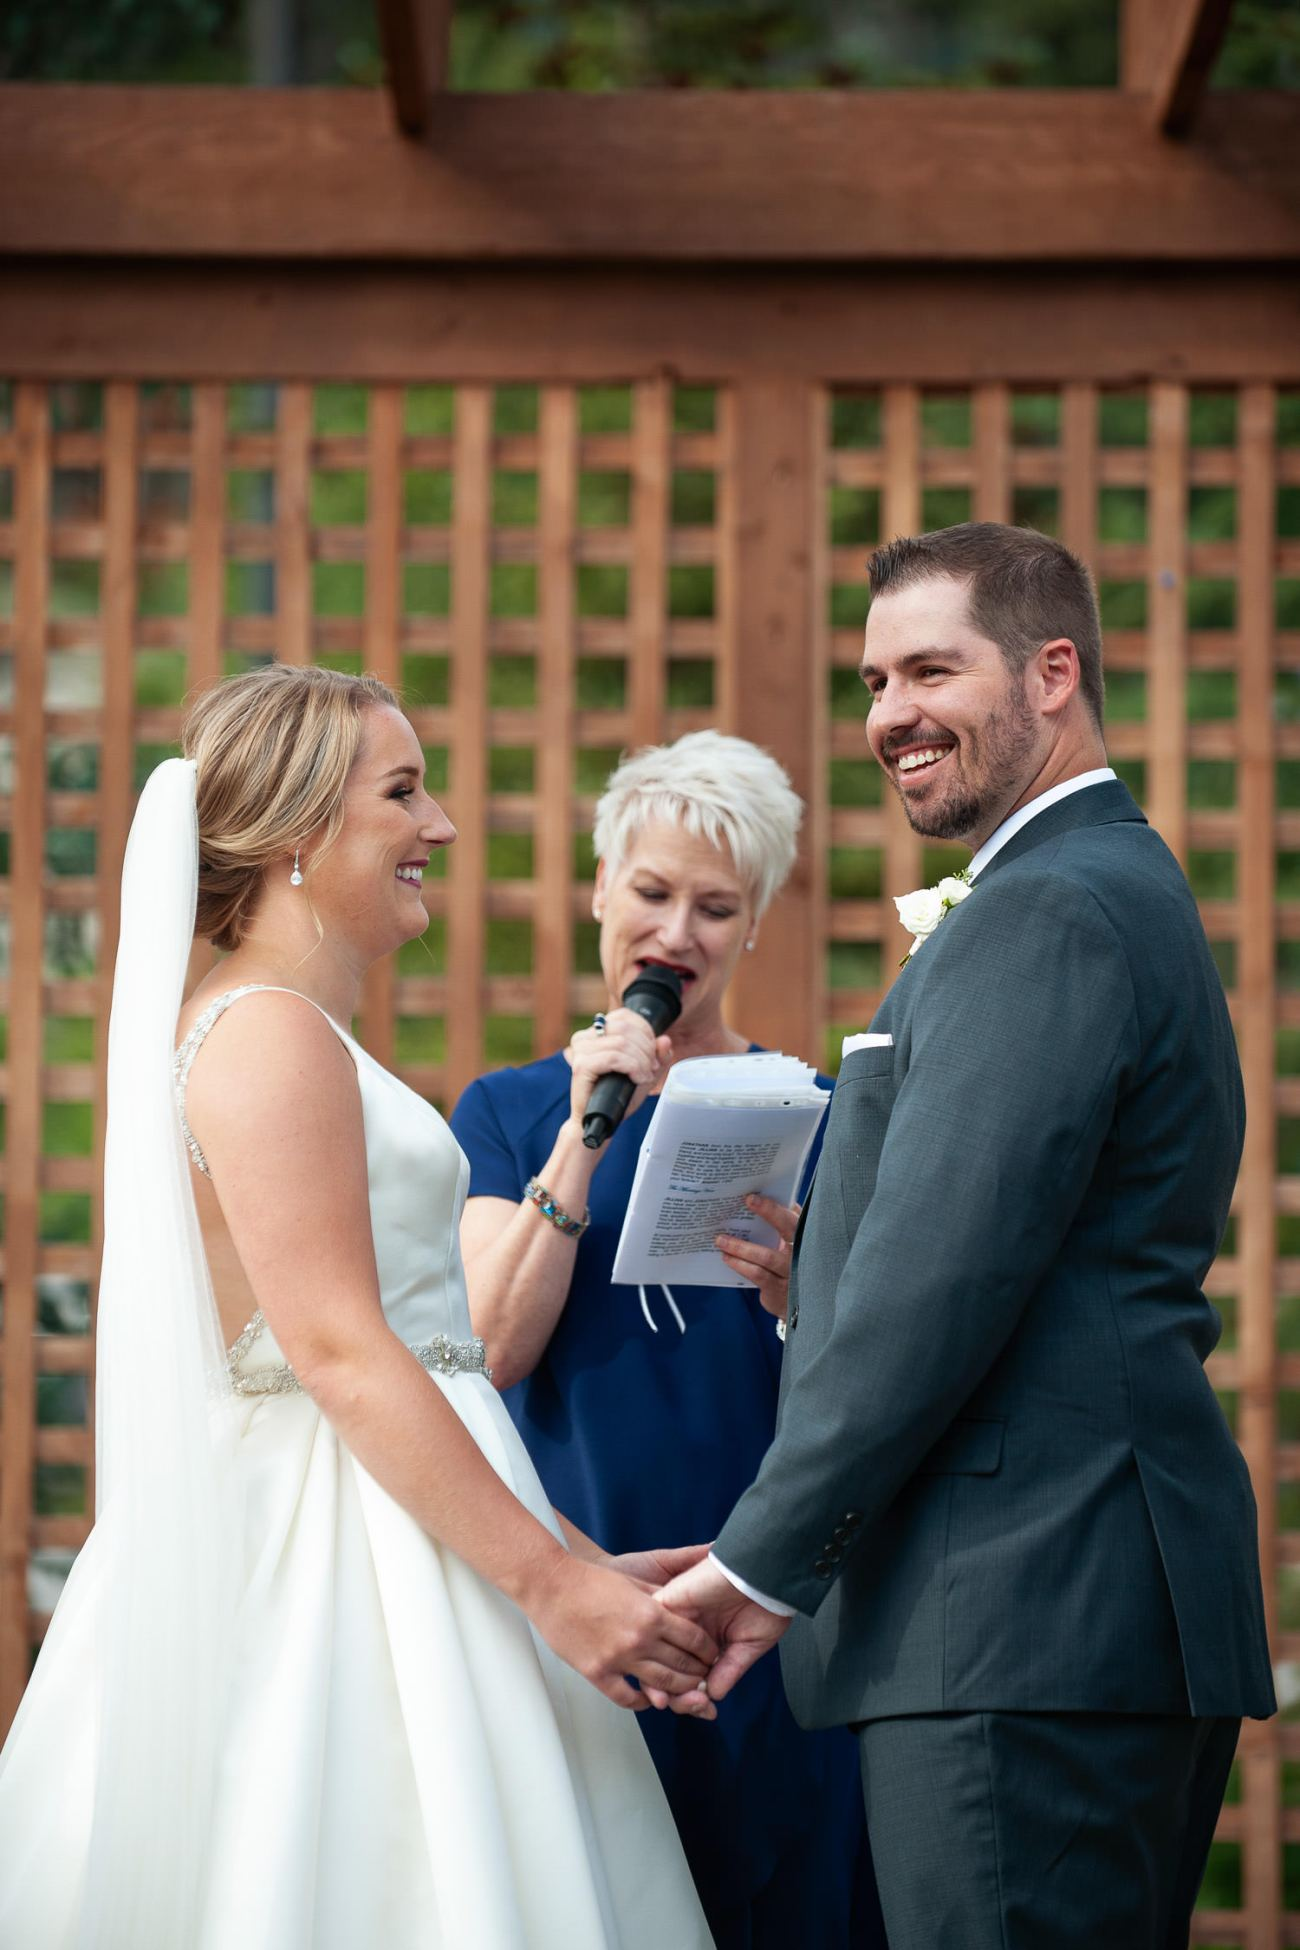 Wedding ceremony at Creekside Villa in Canmore captured by Tara Whittaker Photography